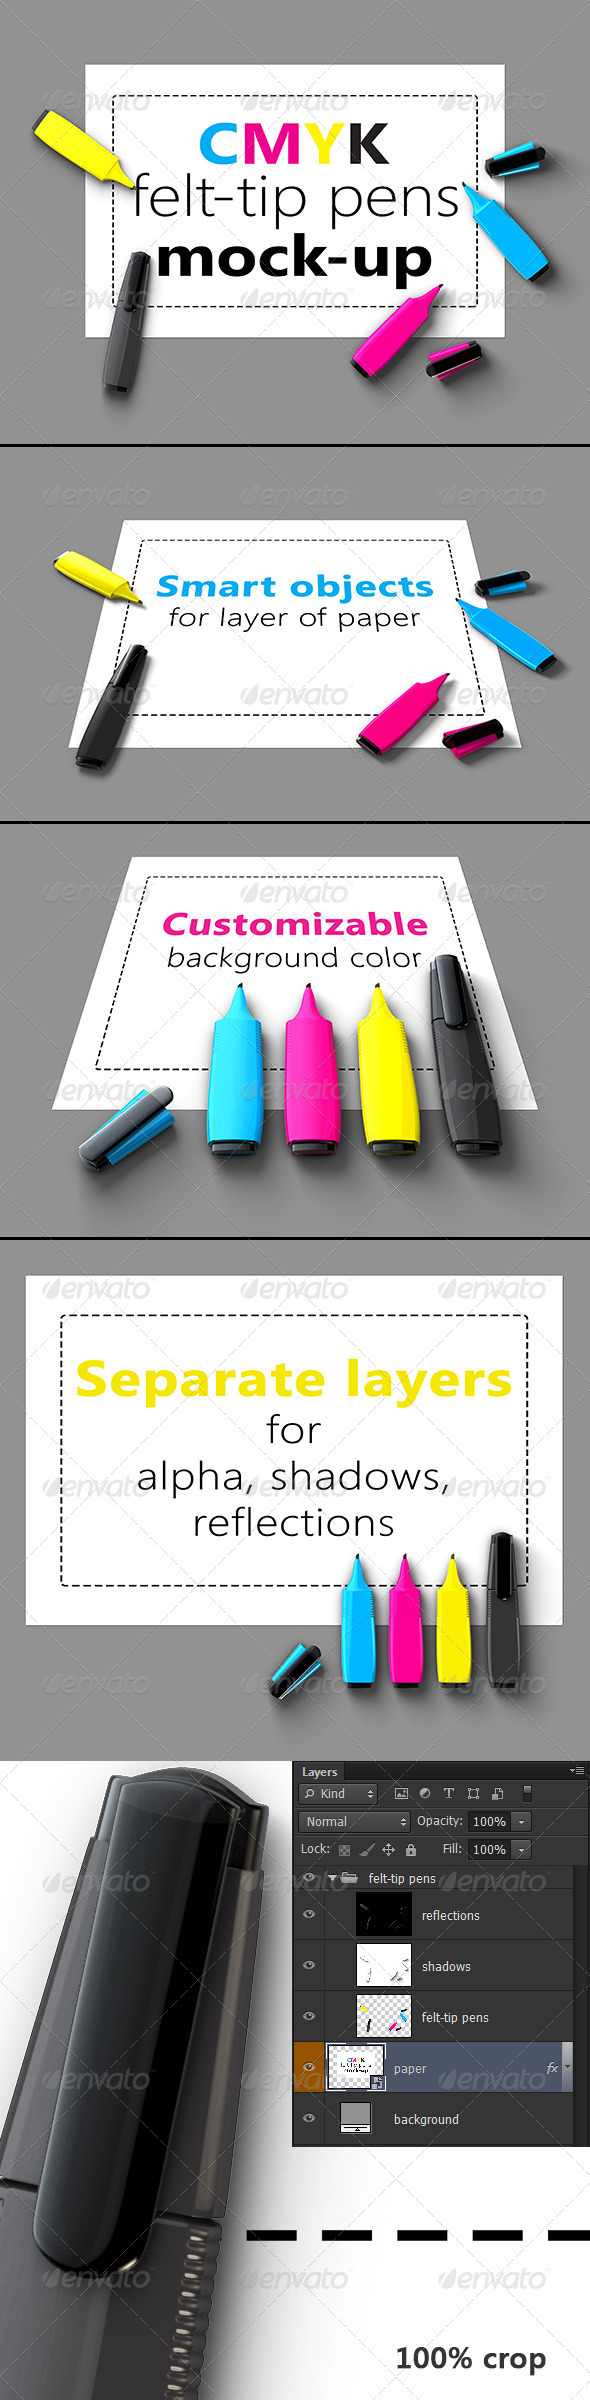 GraphicRiver CMYK Felt-tip Pens Mock-Up 5531585